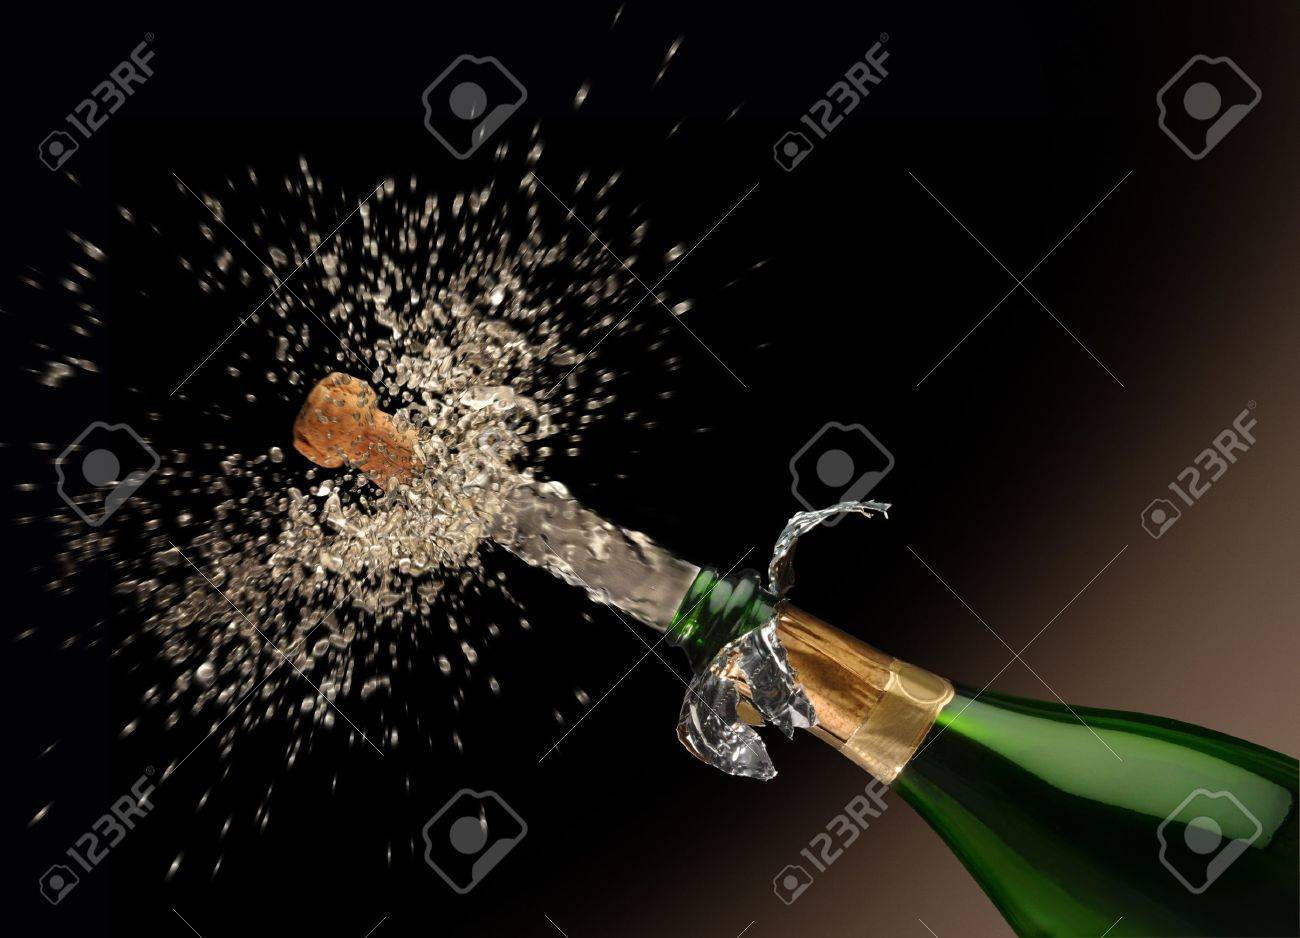 A Quark poping off of the champaign bottle with lots of splash! Stock Photo - 7057764